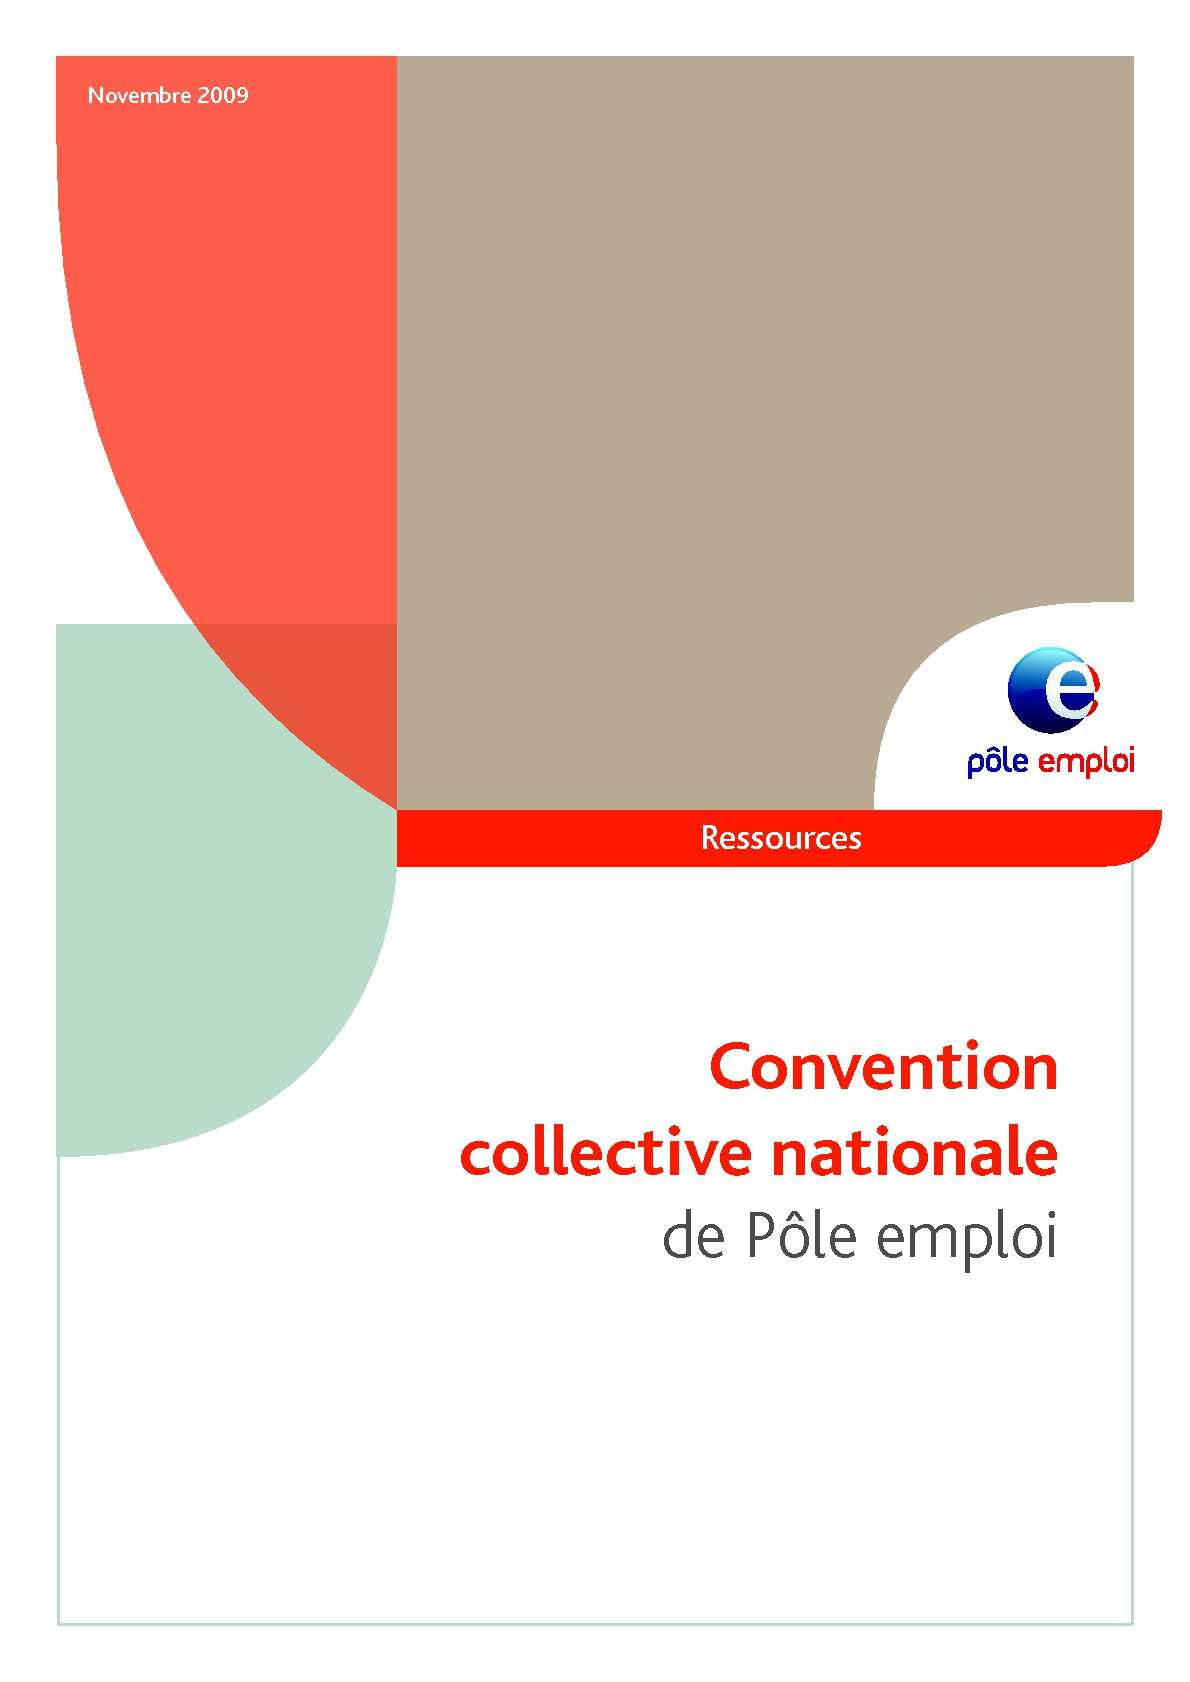 Calam o convention collective nationale de p le emploi - Pole emploi mas de grille montpellier ...